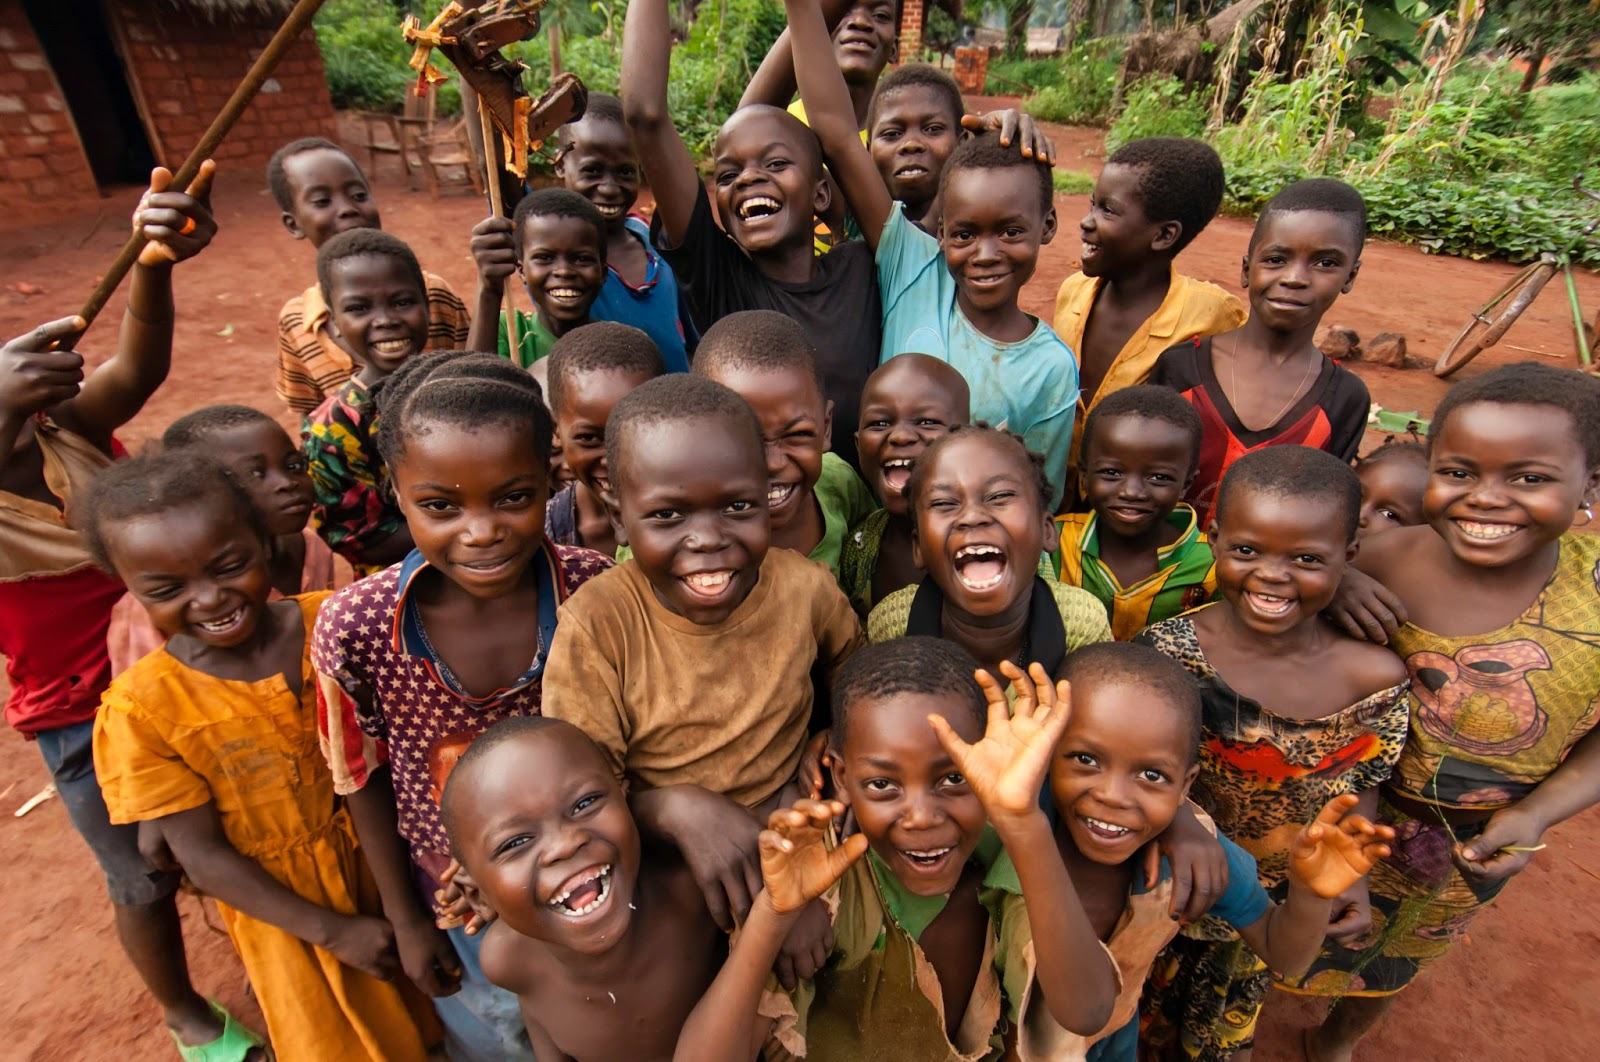 https://i0.wp.com/africa-facts.org/wp-content/uploads/2015/01/african-kids.jpg